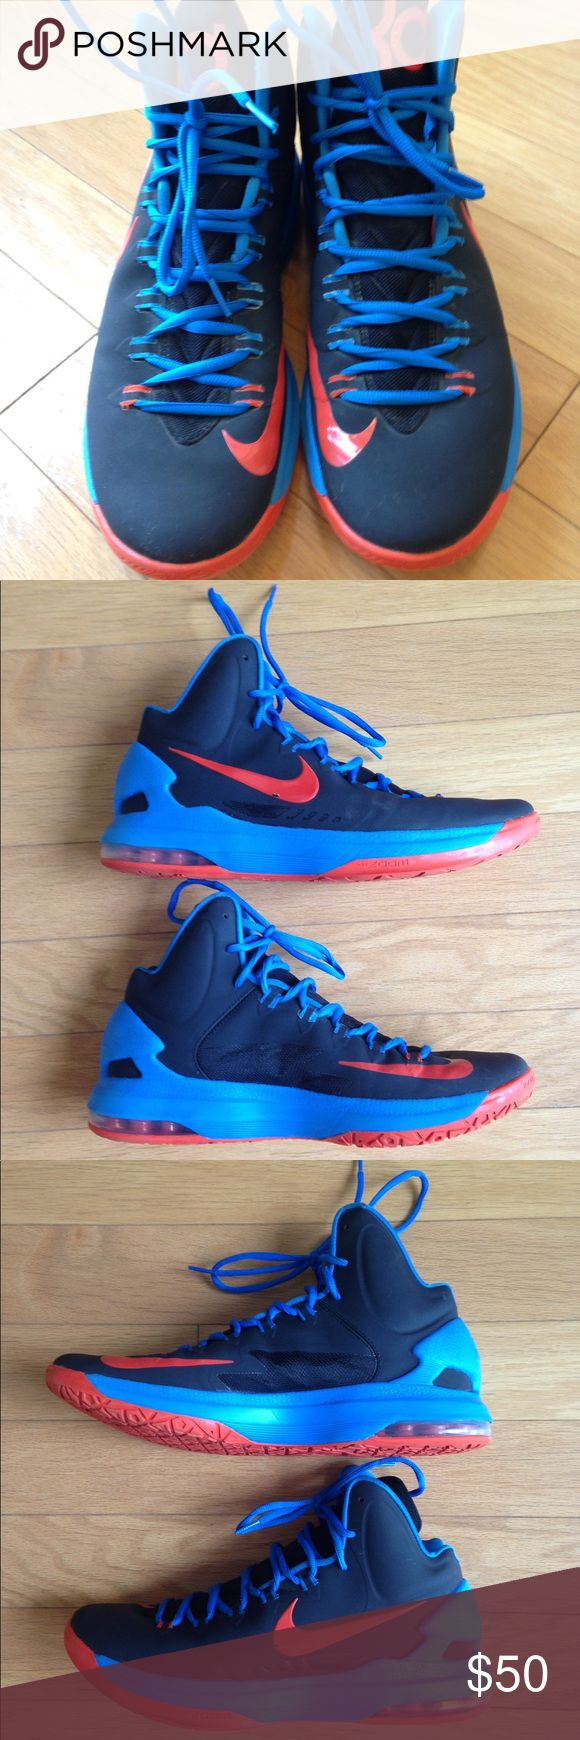 Kevin Durant Mens Nike Basketball Shoes Size 11 Awesome pair of KDs Mens size 11. Pair is in great used condition. High for great ankle protection. Kevin Durant. Nike Shoes Athletic Shoes #basketballshoes